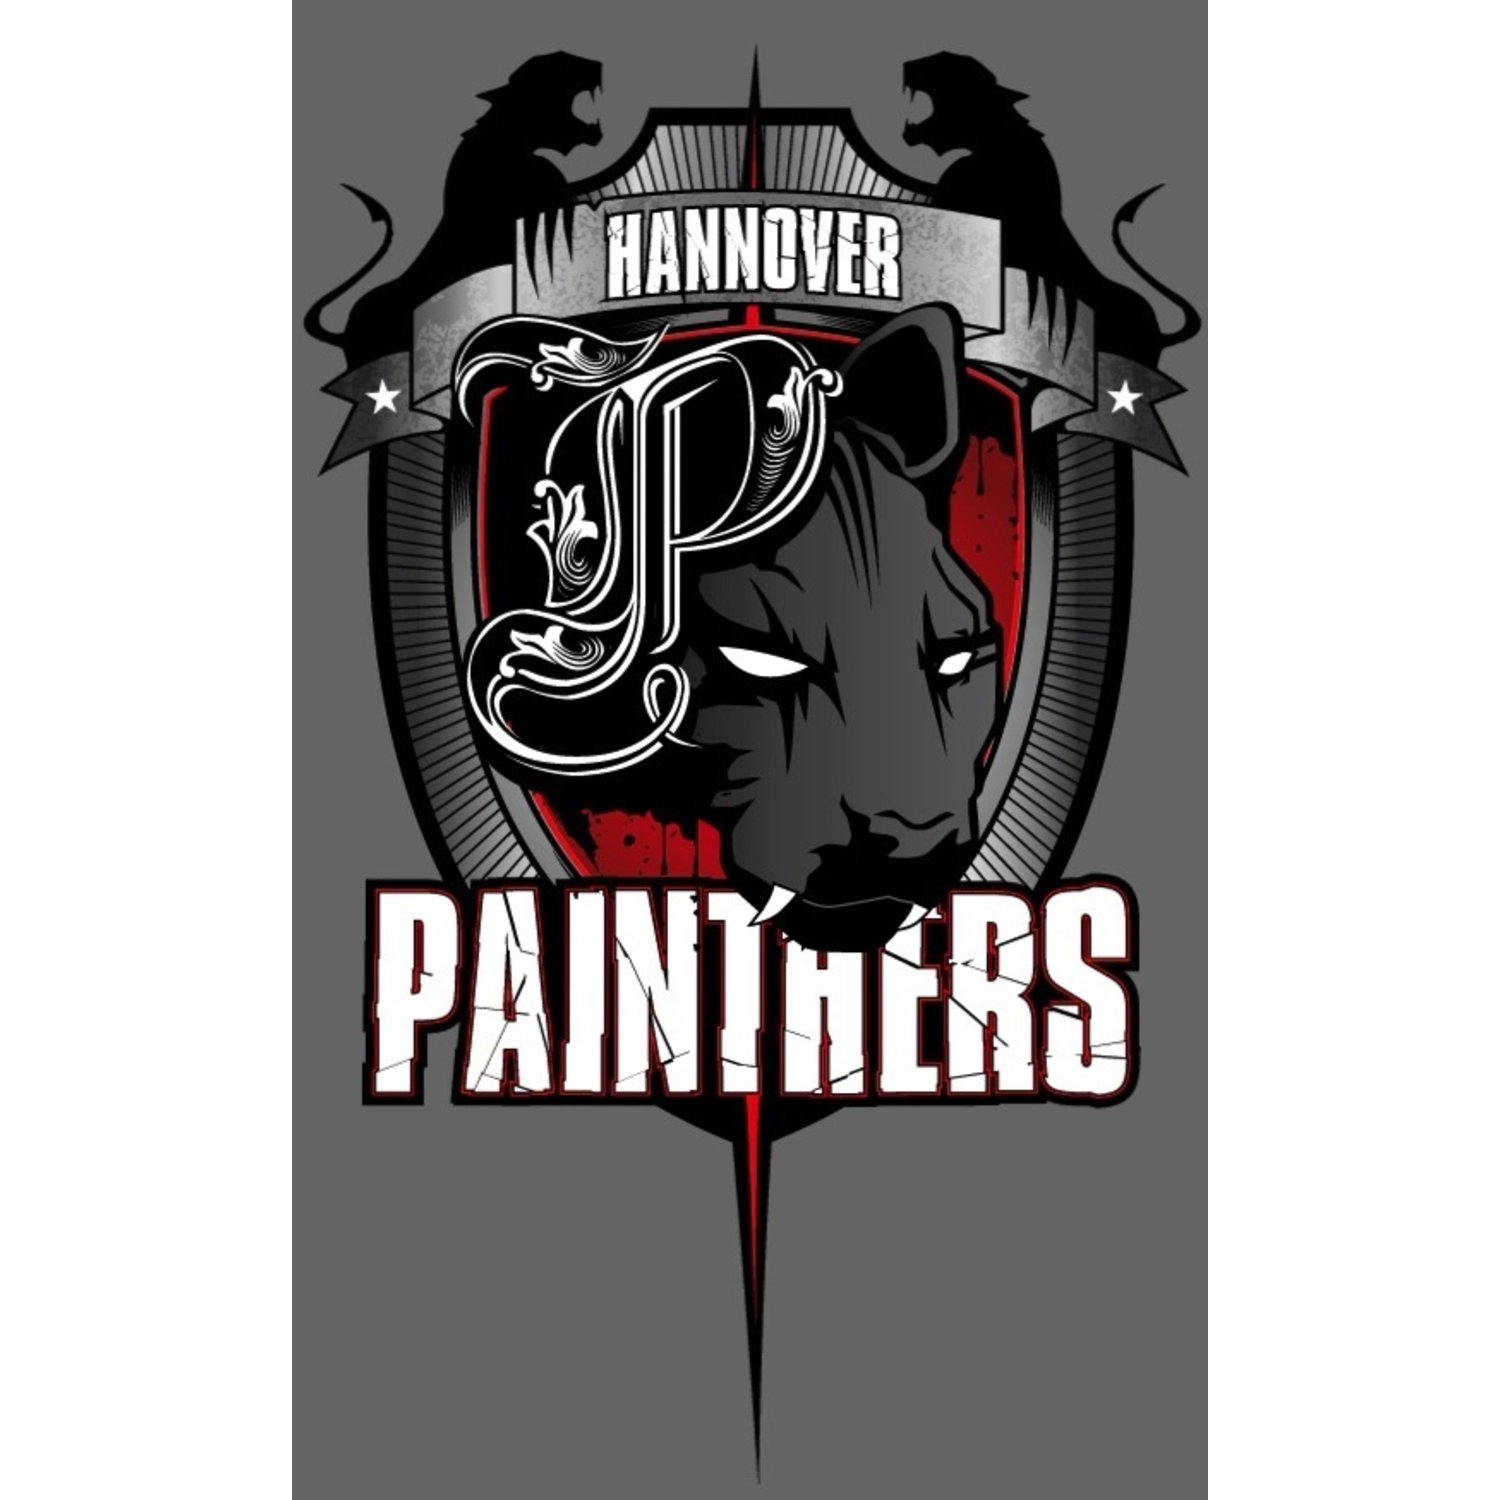 Hannover painthers 3 deutsche paintball liga Pokale hannover